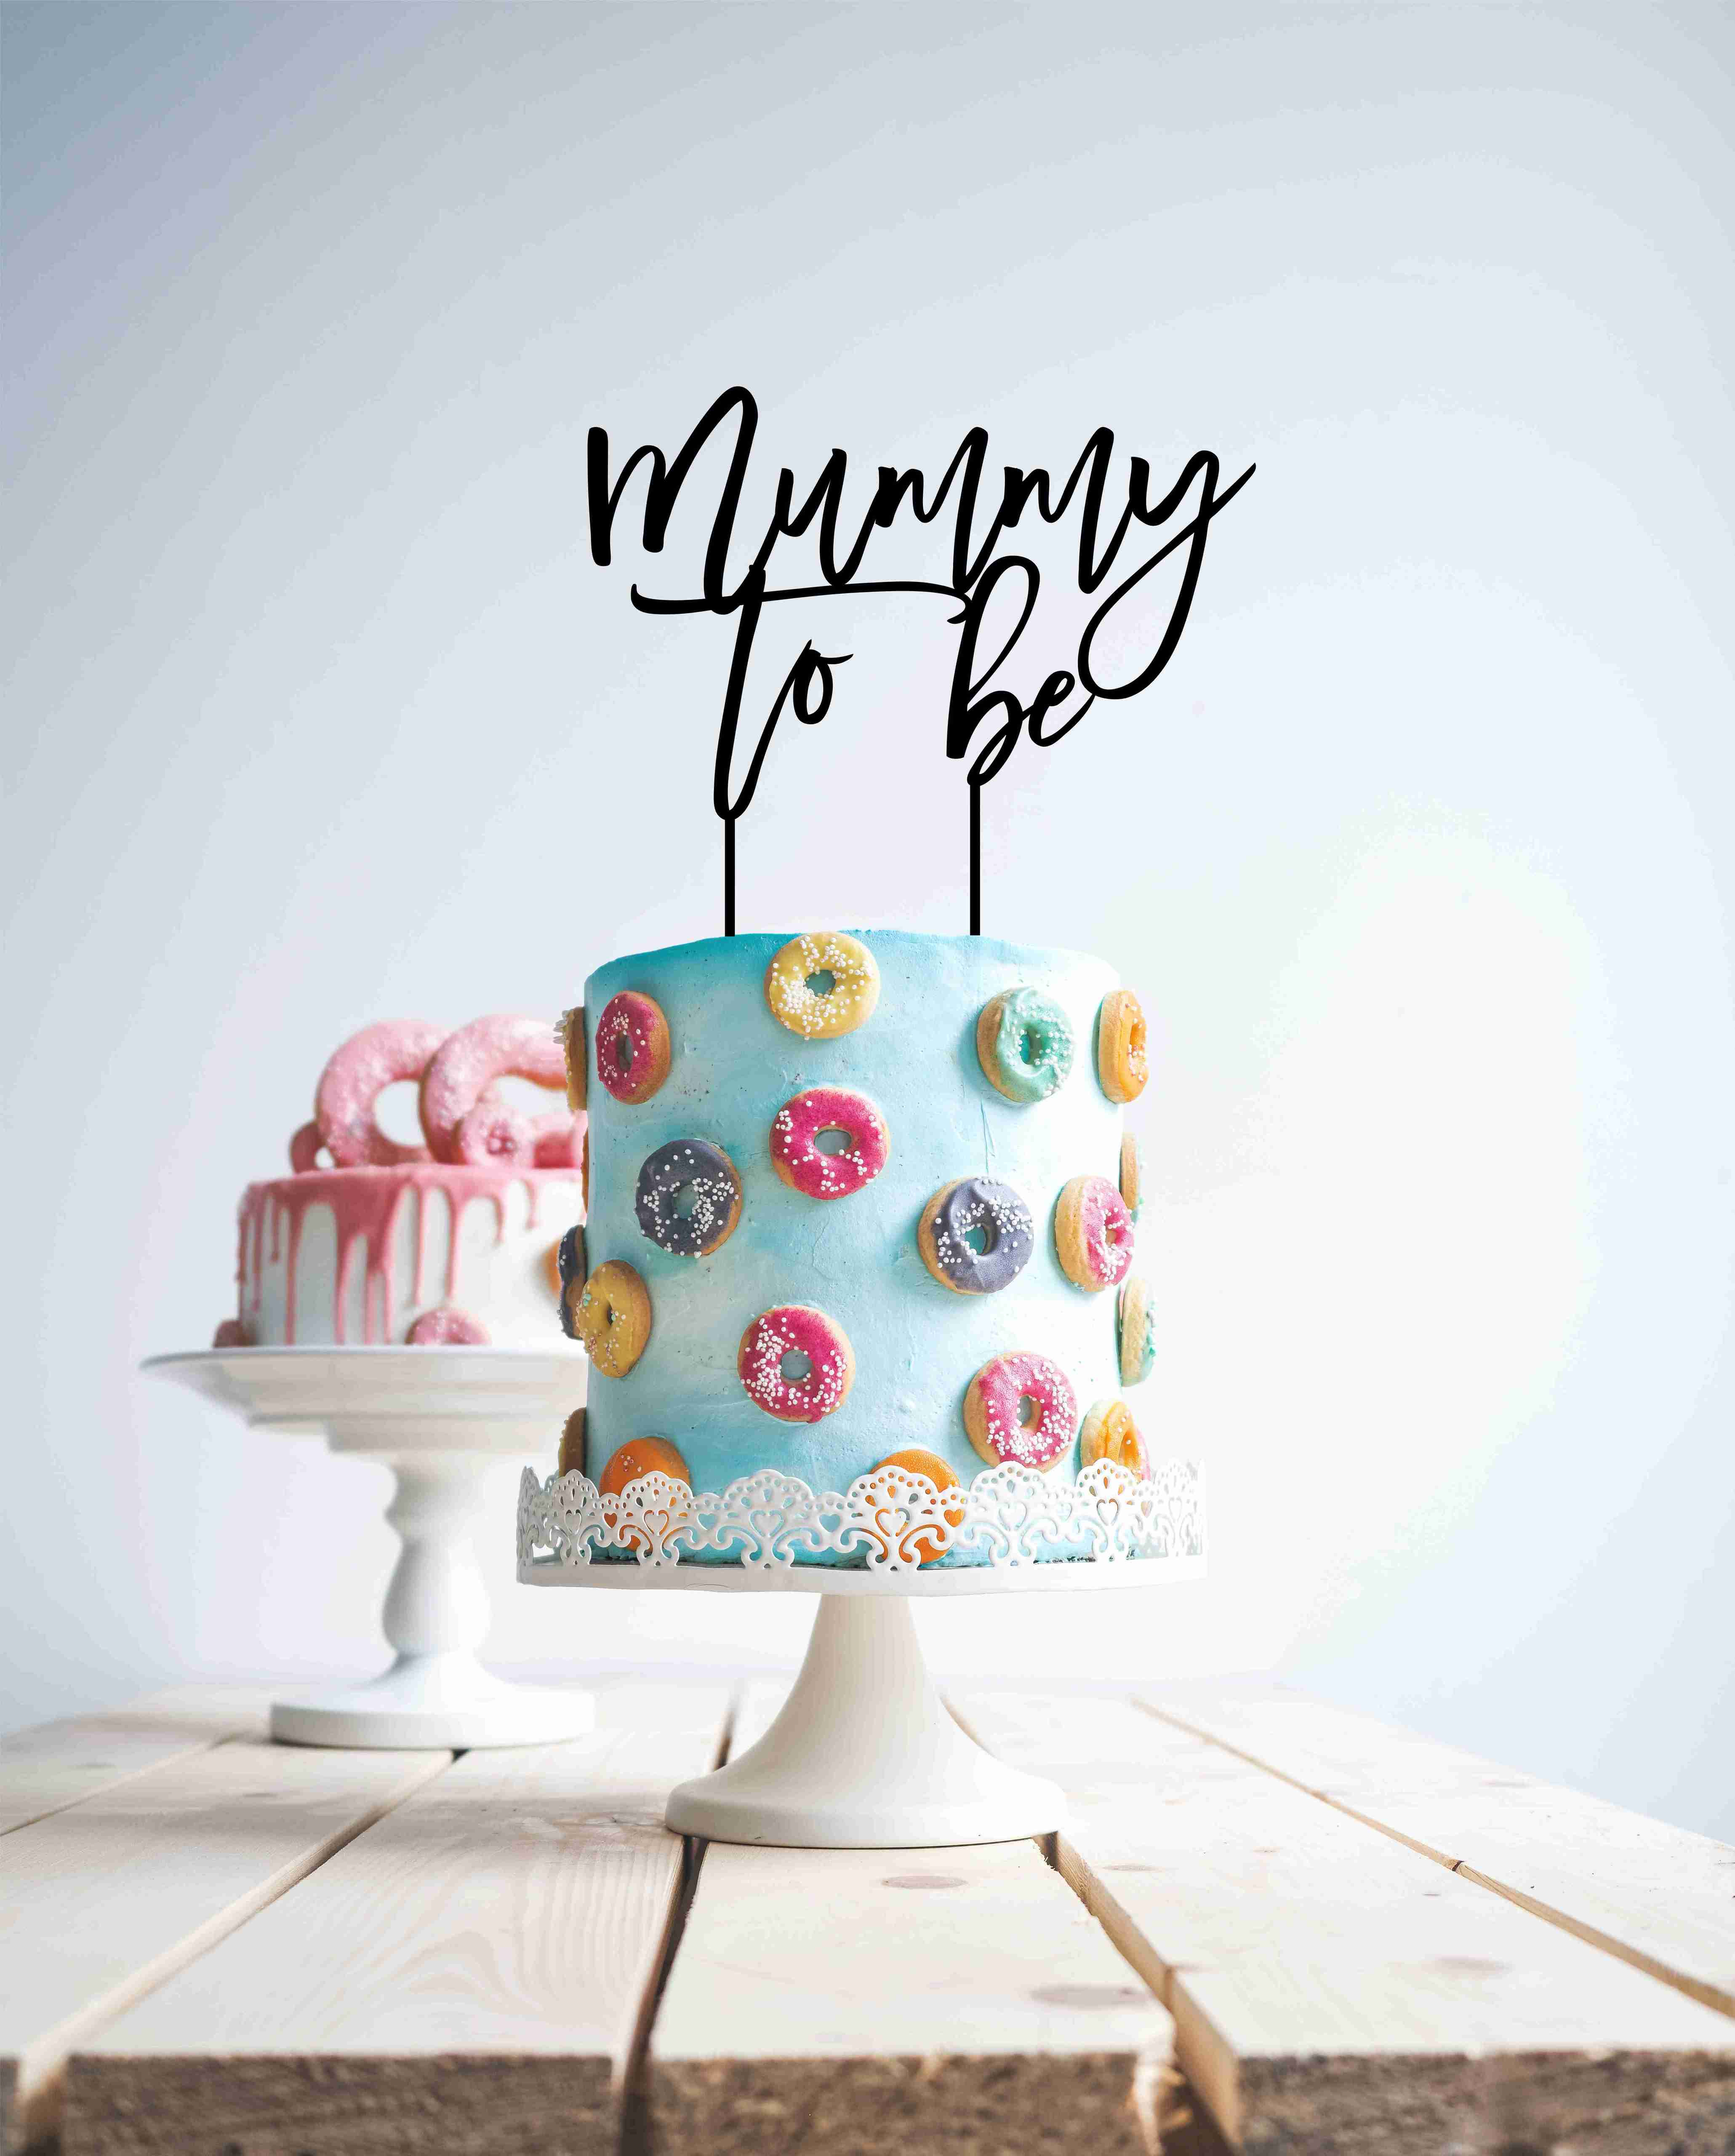 Mummy to be - Wood Cake Topper / wooden topper